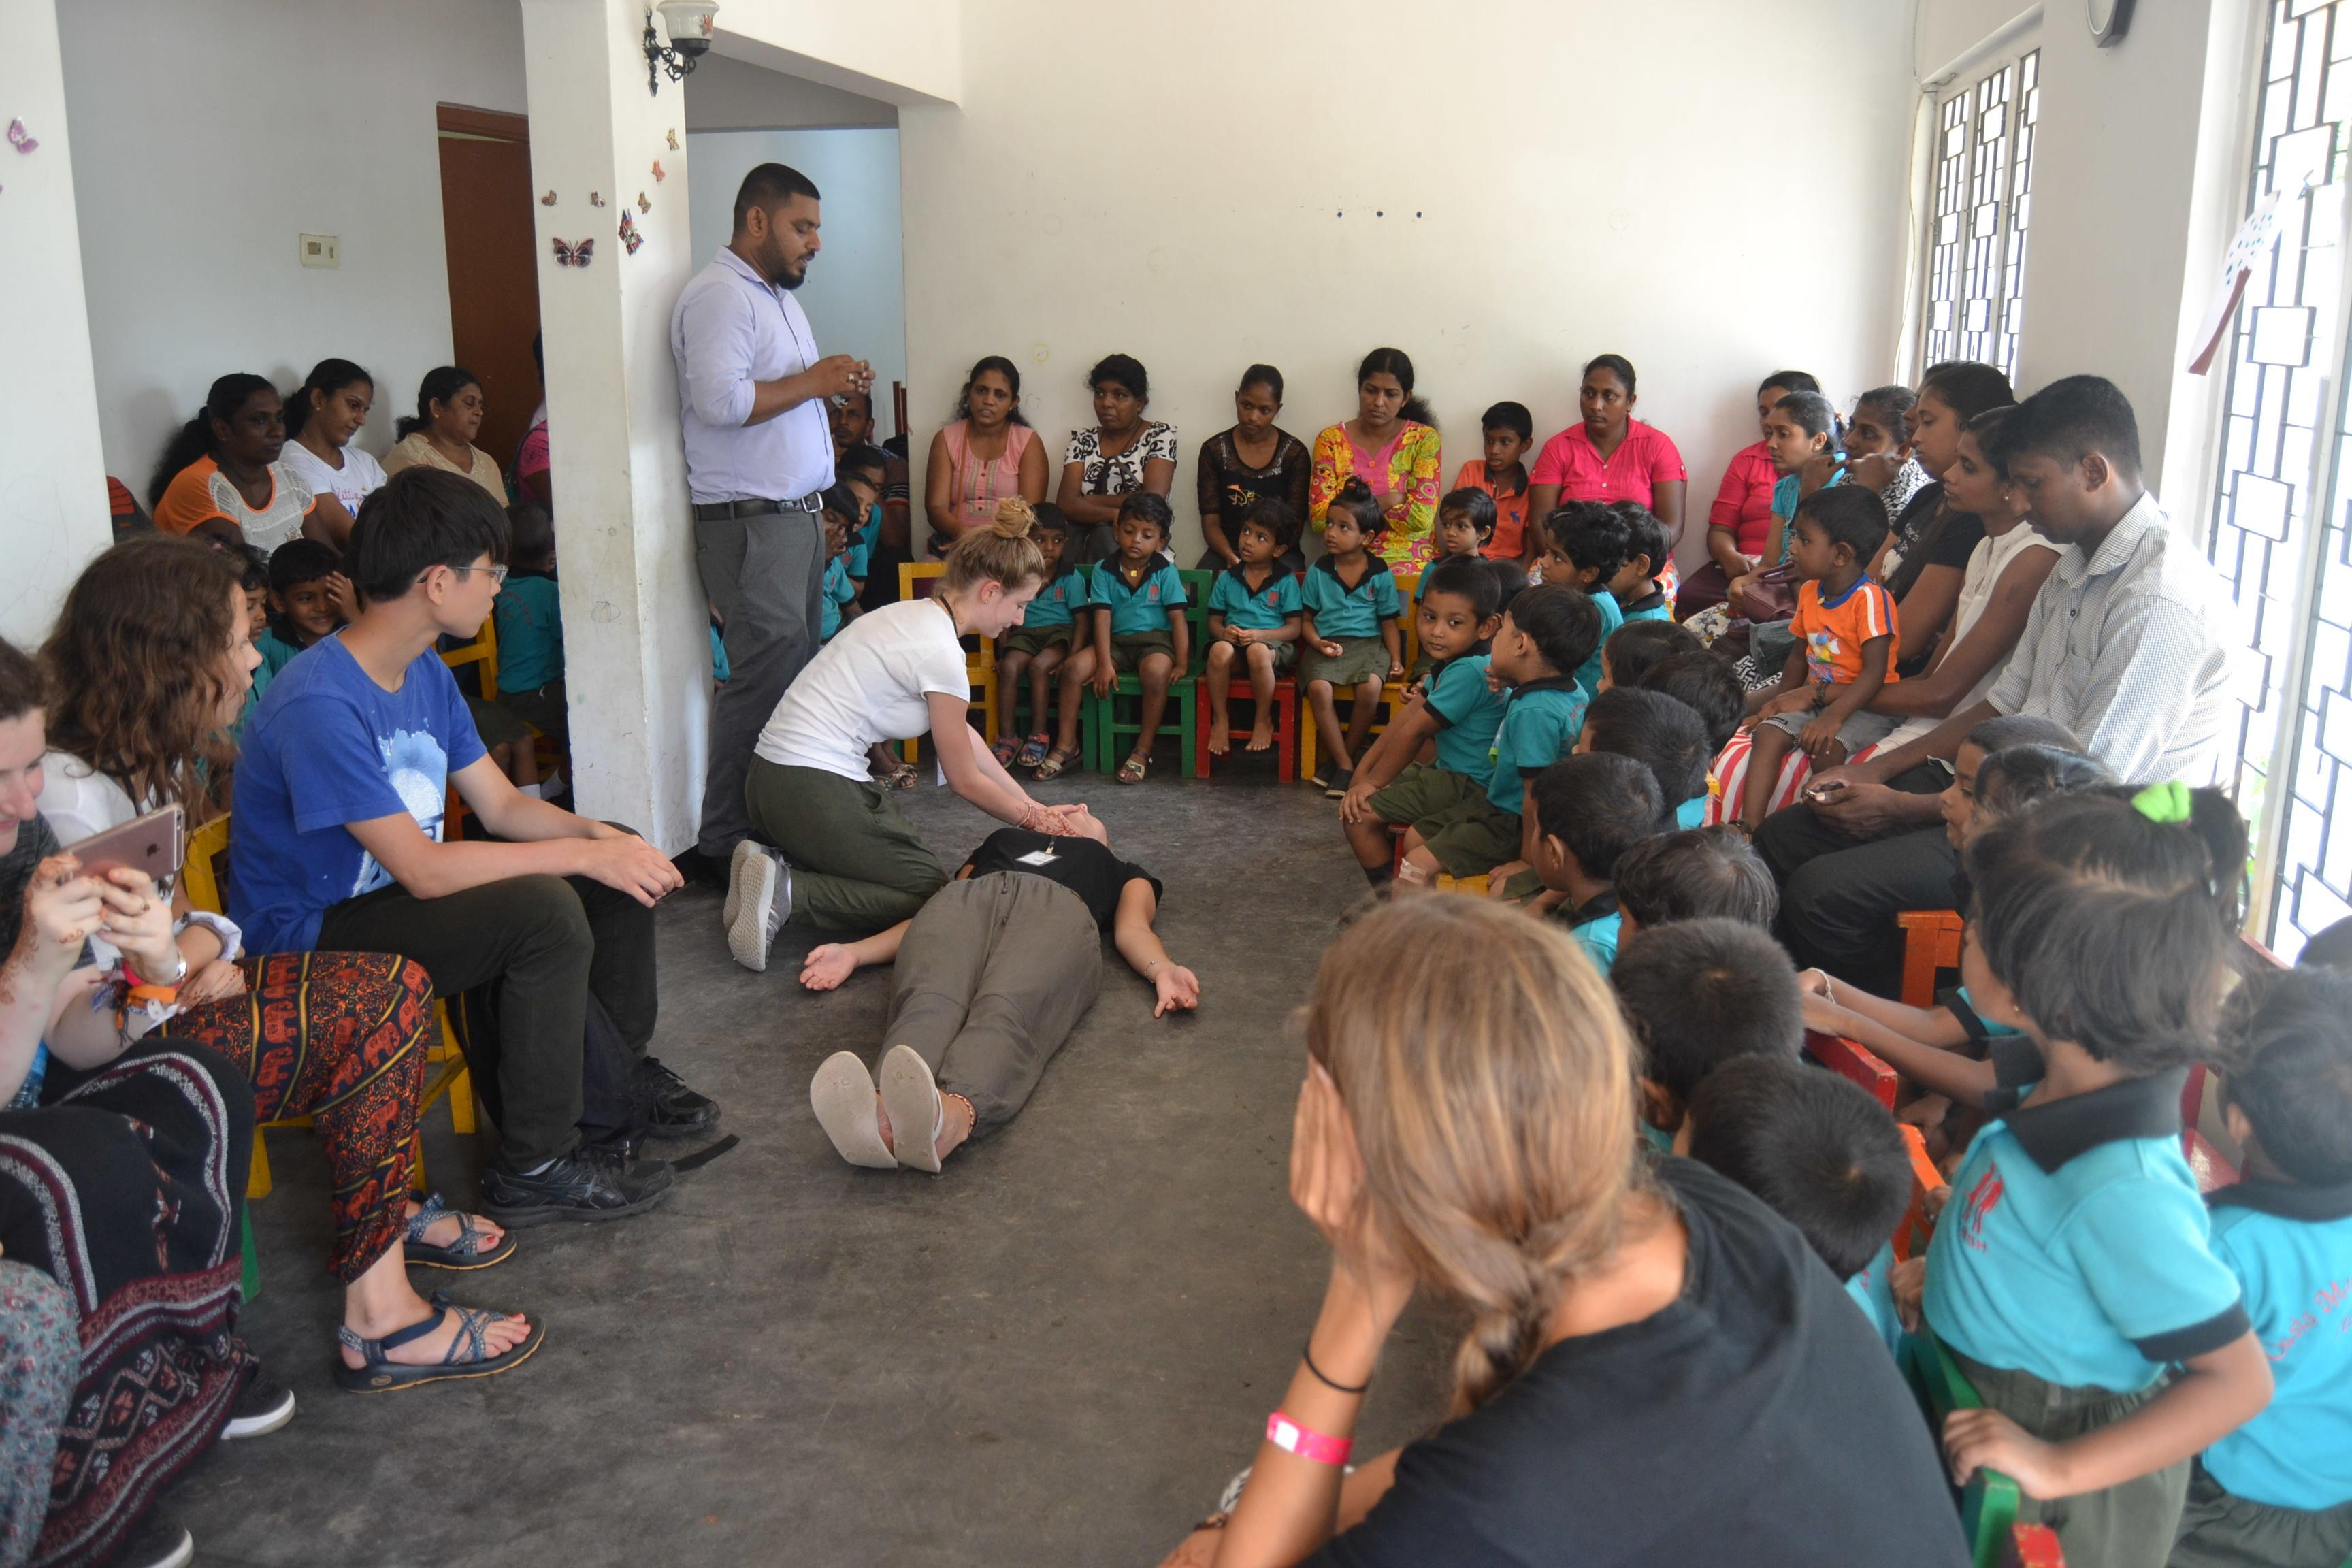 Projects Abroad Physiotherapy interns in Sri Lanka join other medical interns to learn about and practice CPR.